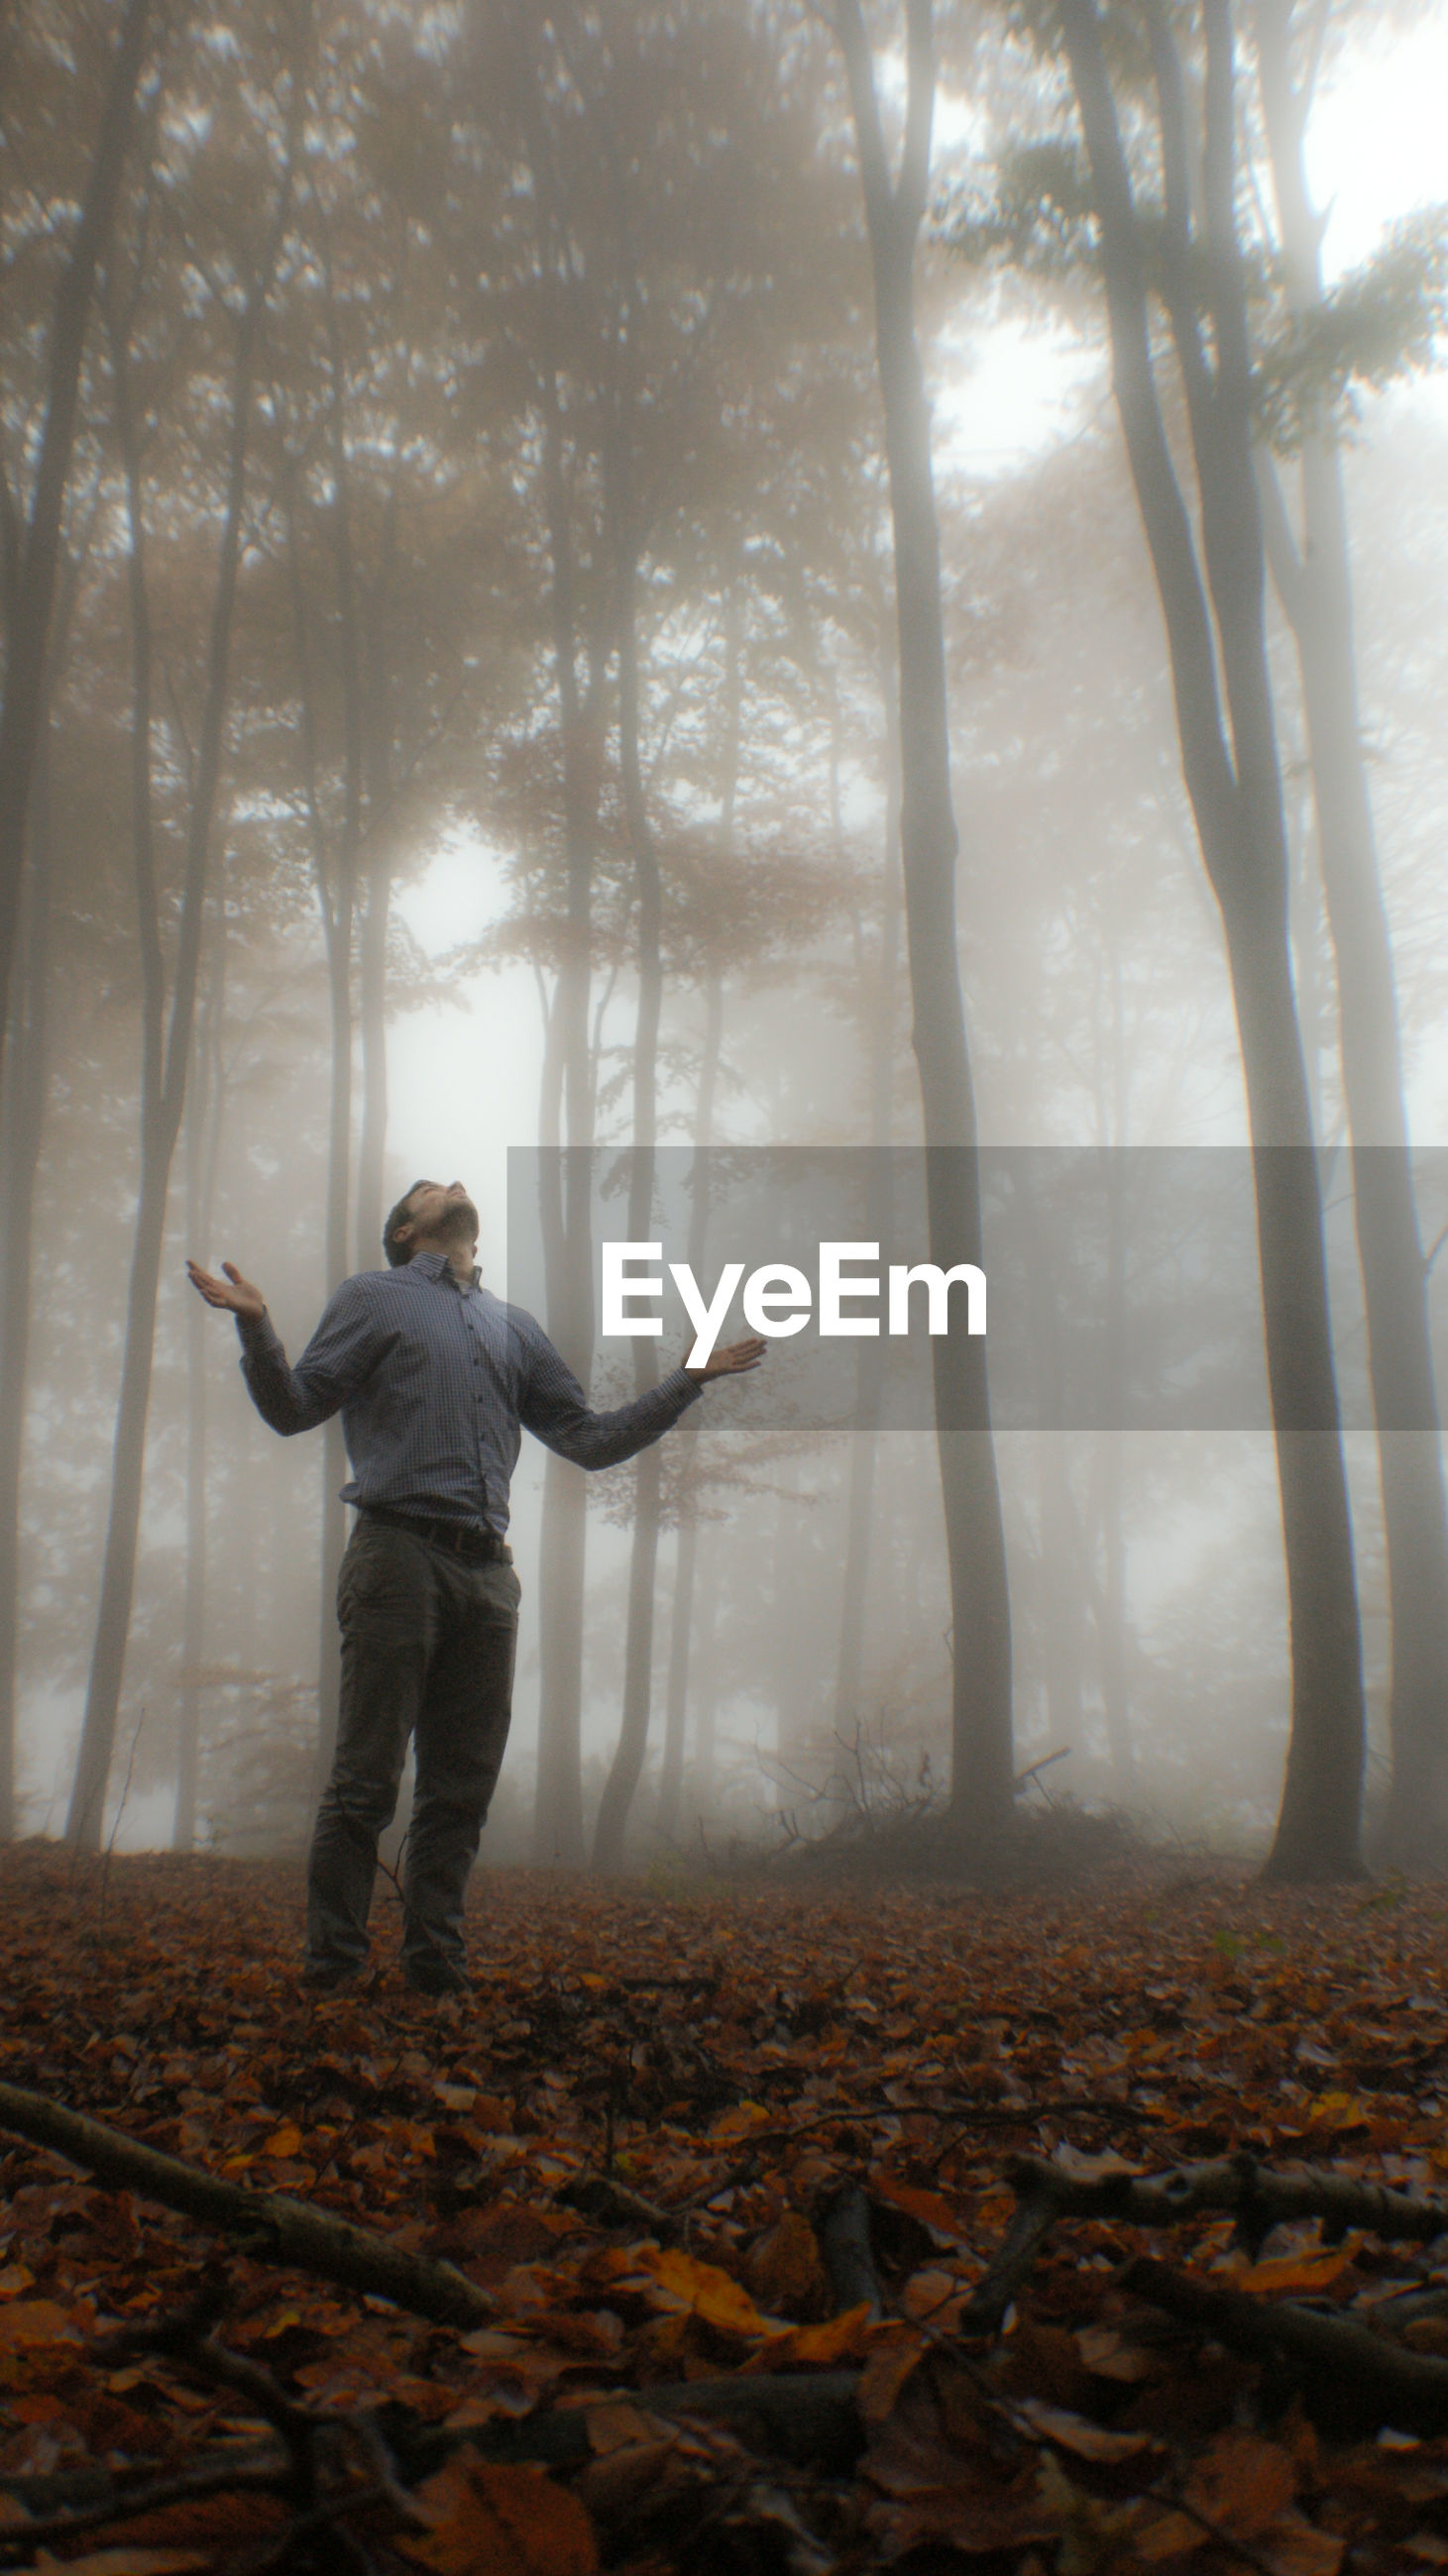 Low angle view of man standing on field against trees during foggy weather